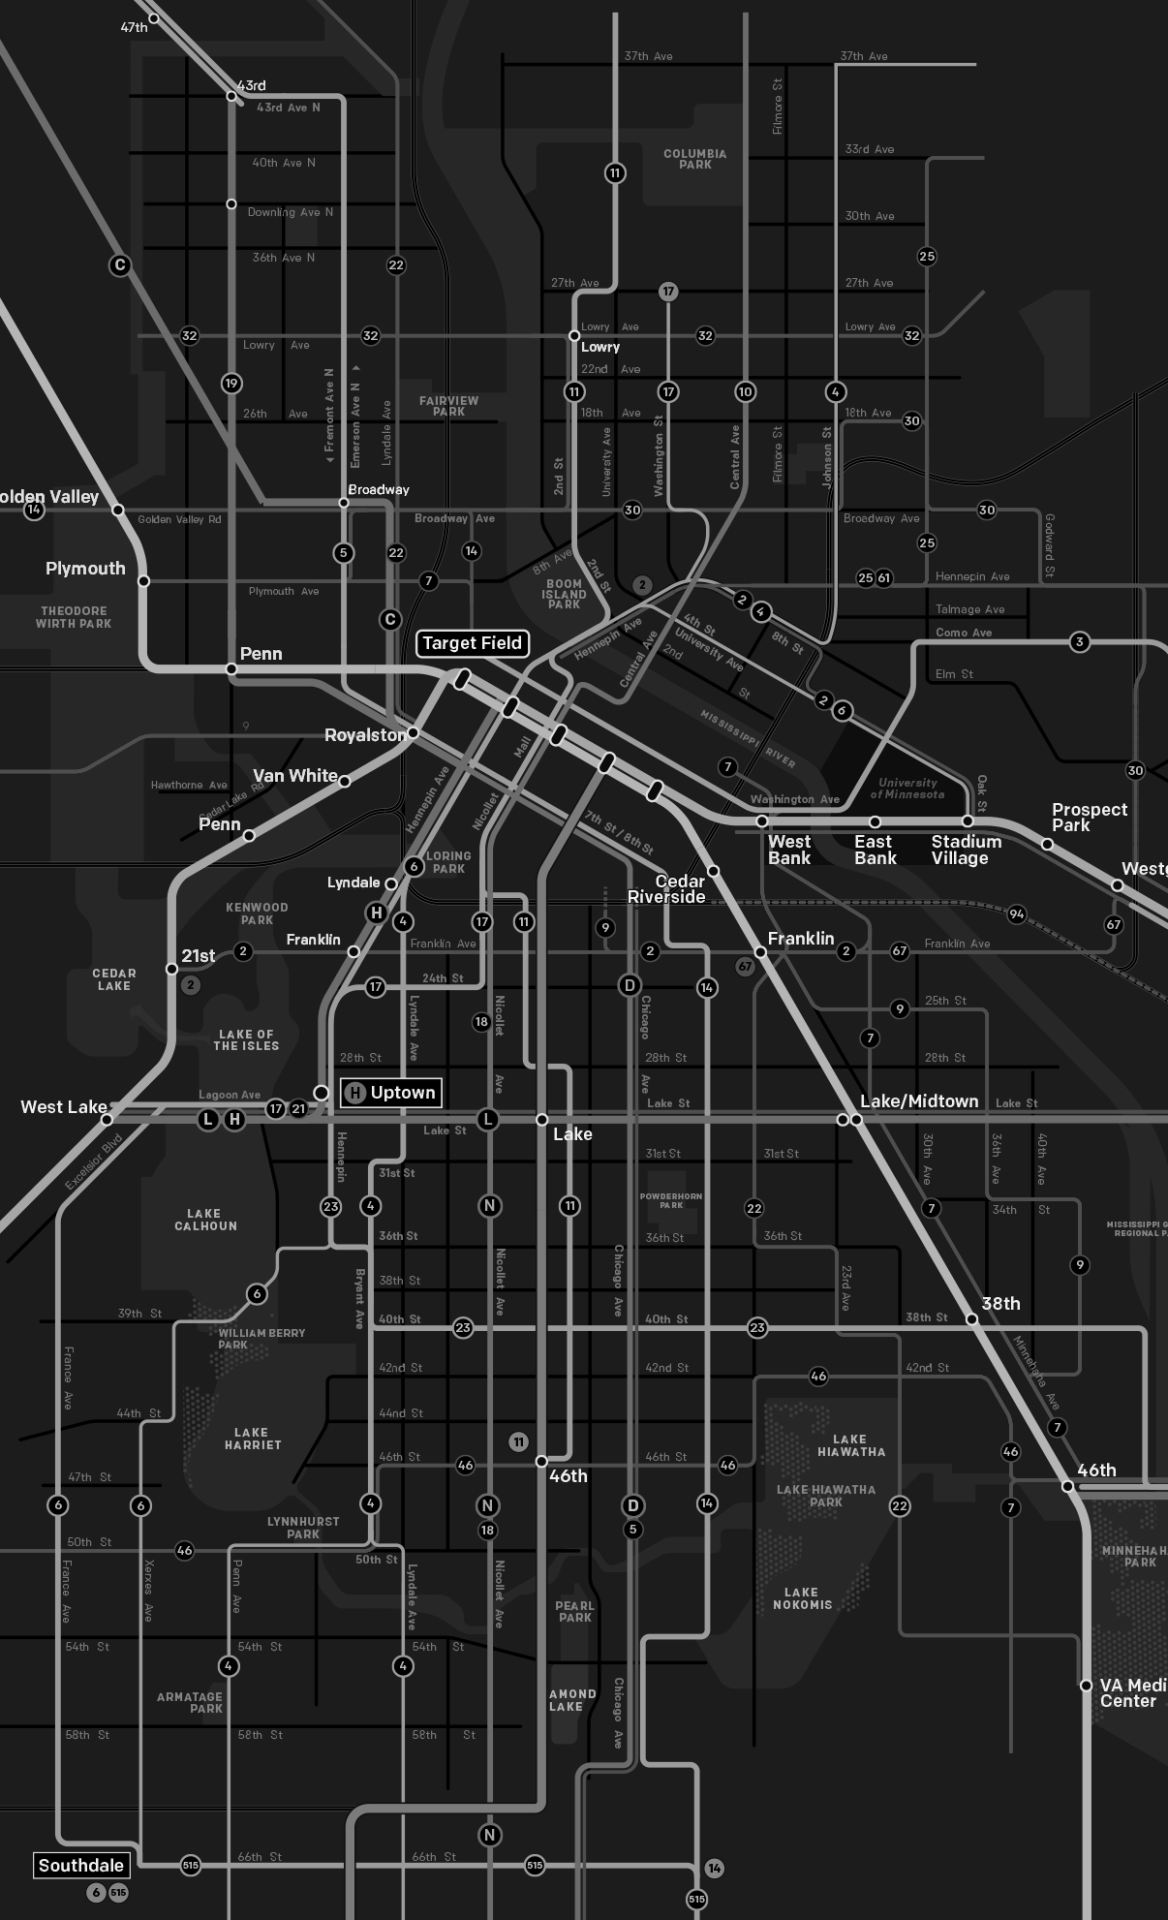 Future Minneapolis Transit Map by Kyril Negoa at Mapping Twin Cities Tumbler